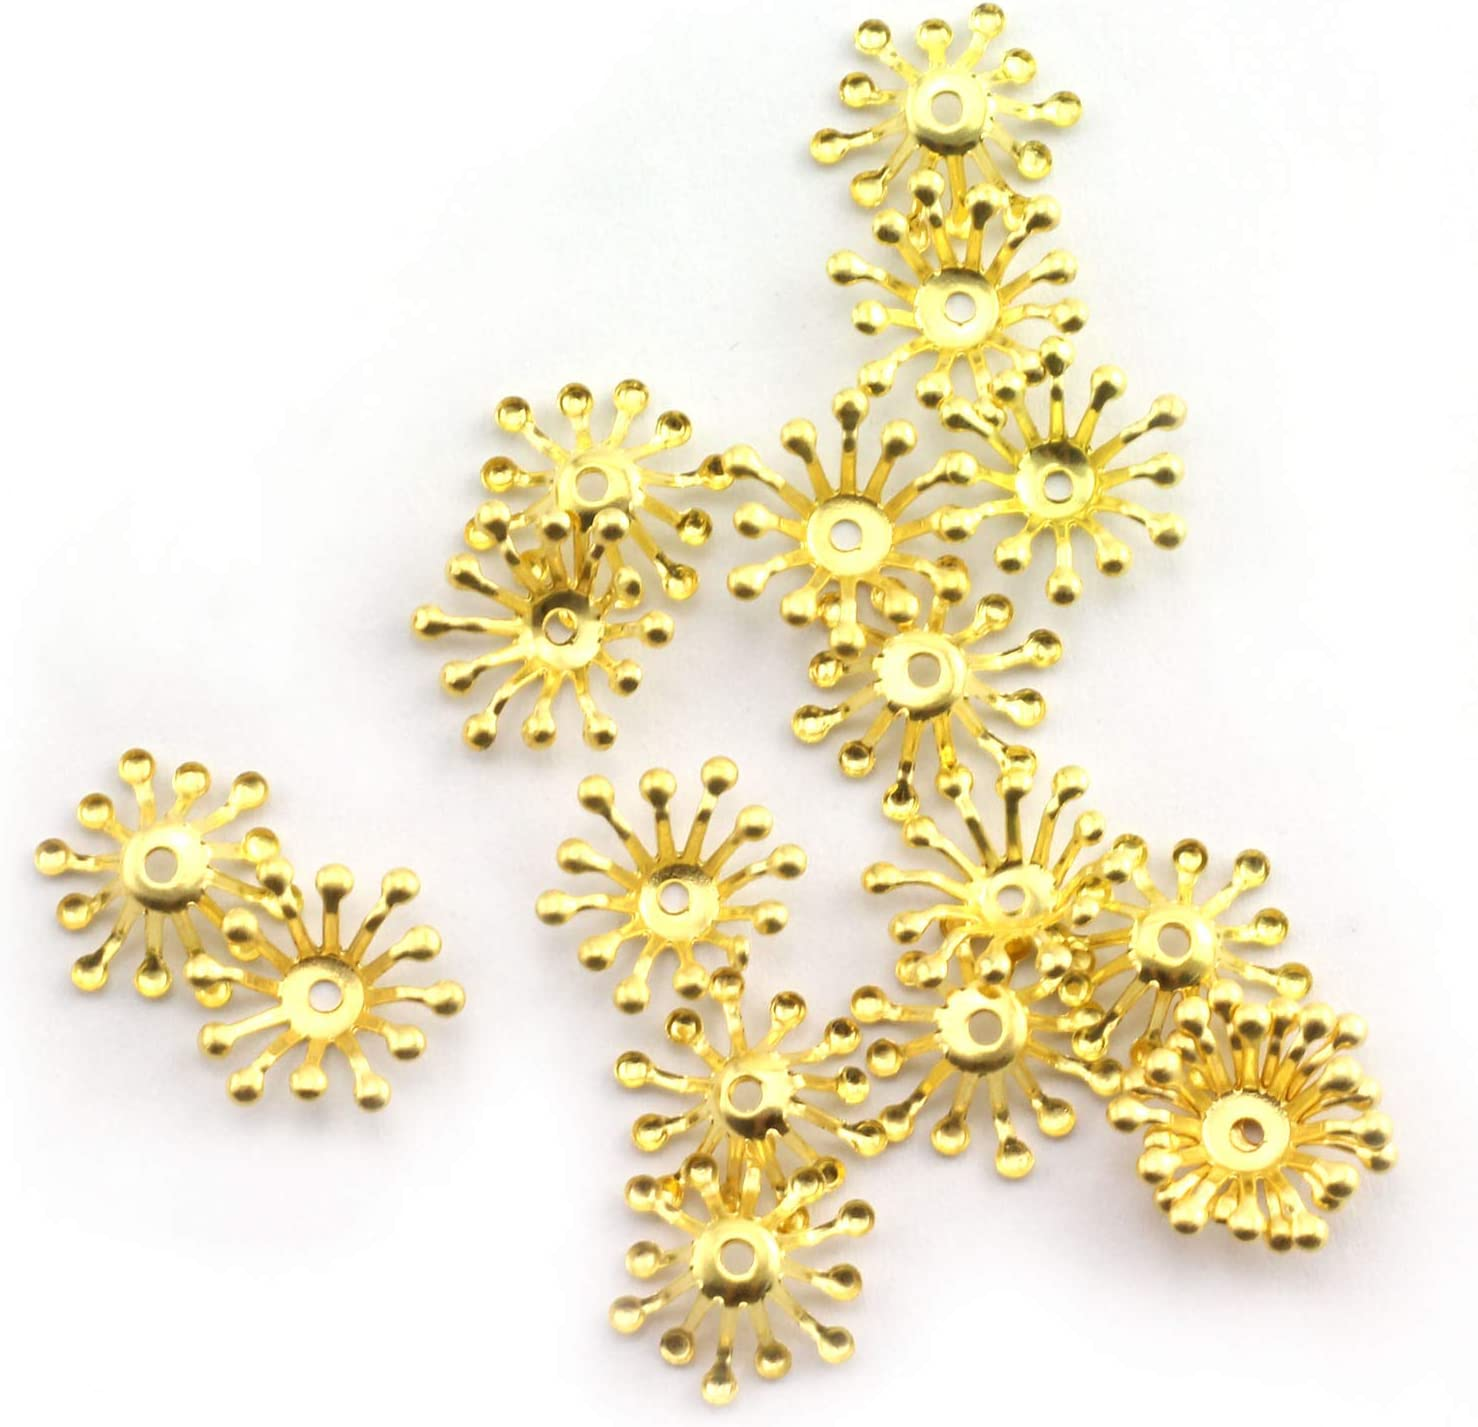 NX Garden Flower Bead Cap 100PCS Golden Cast Iron Hollow Cubic Flower Core for Crafting Jewelry Making Accessory Small Findings Metal Beads Fitting DIY Accessories